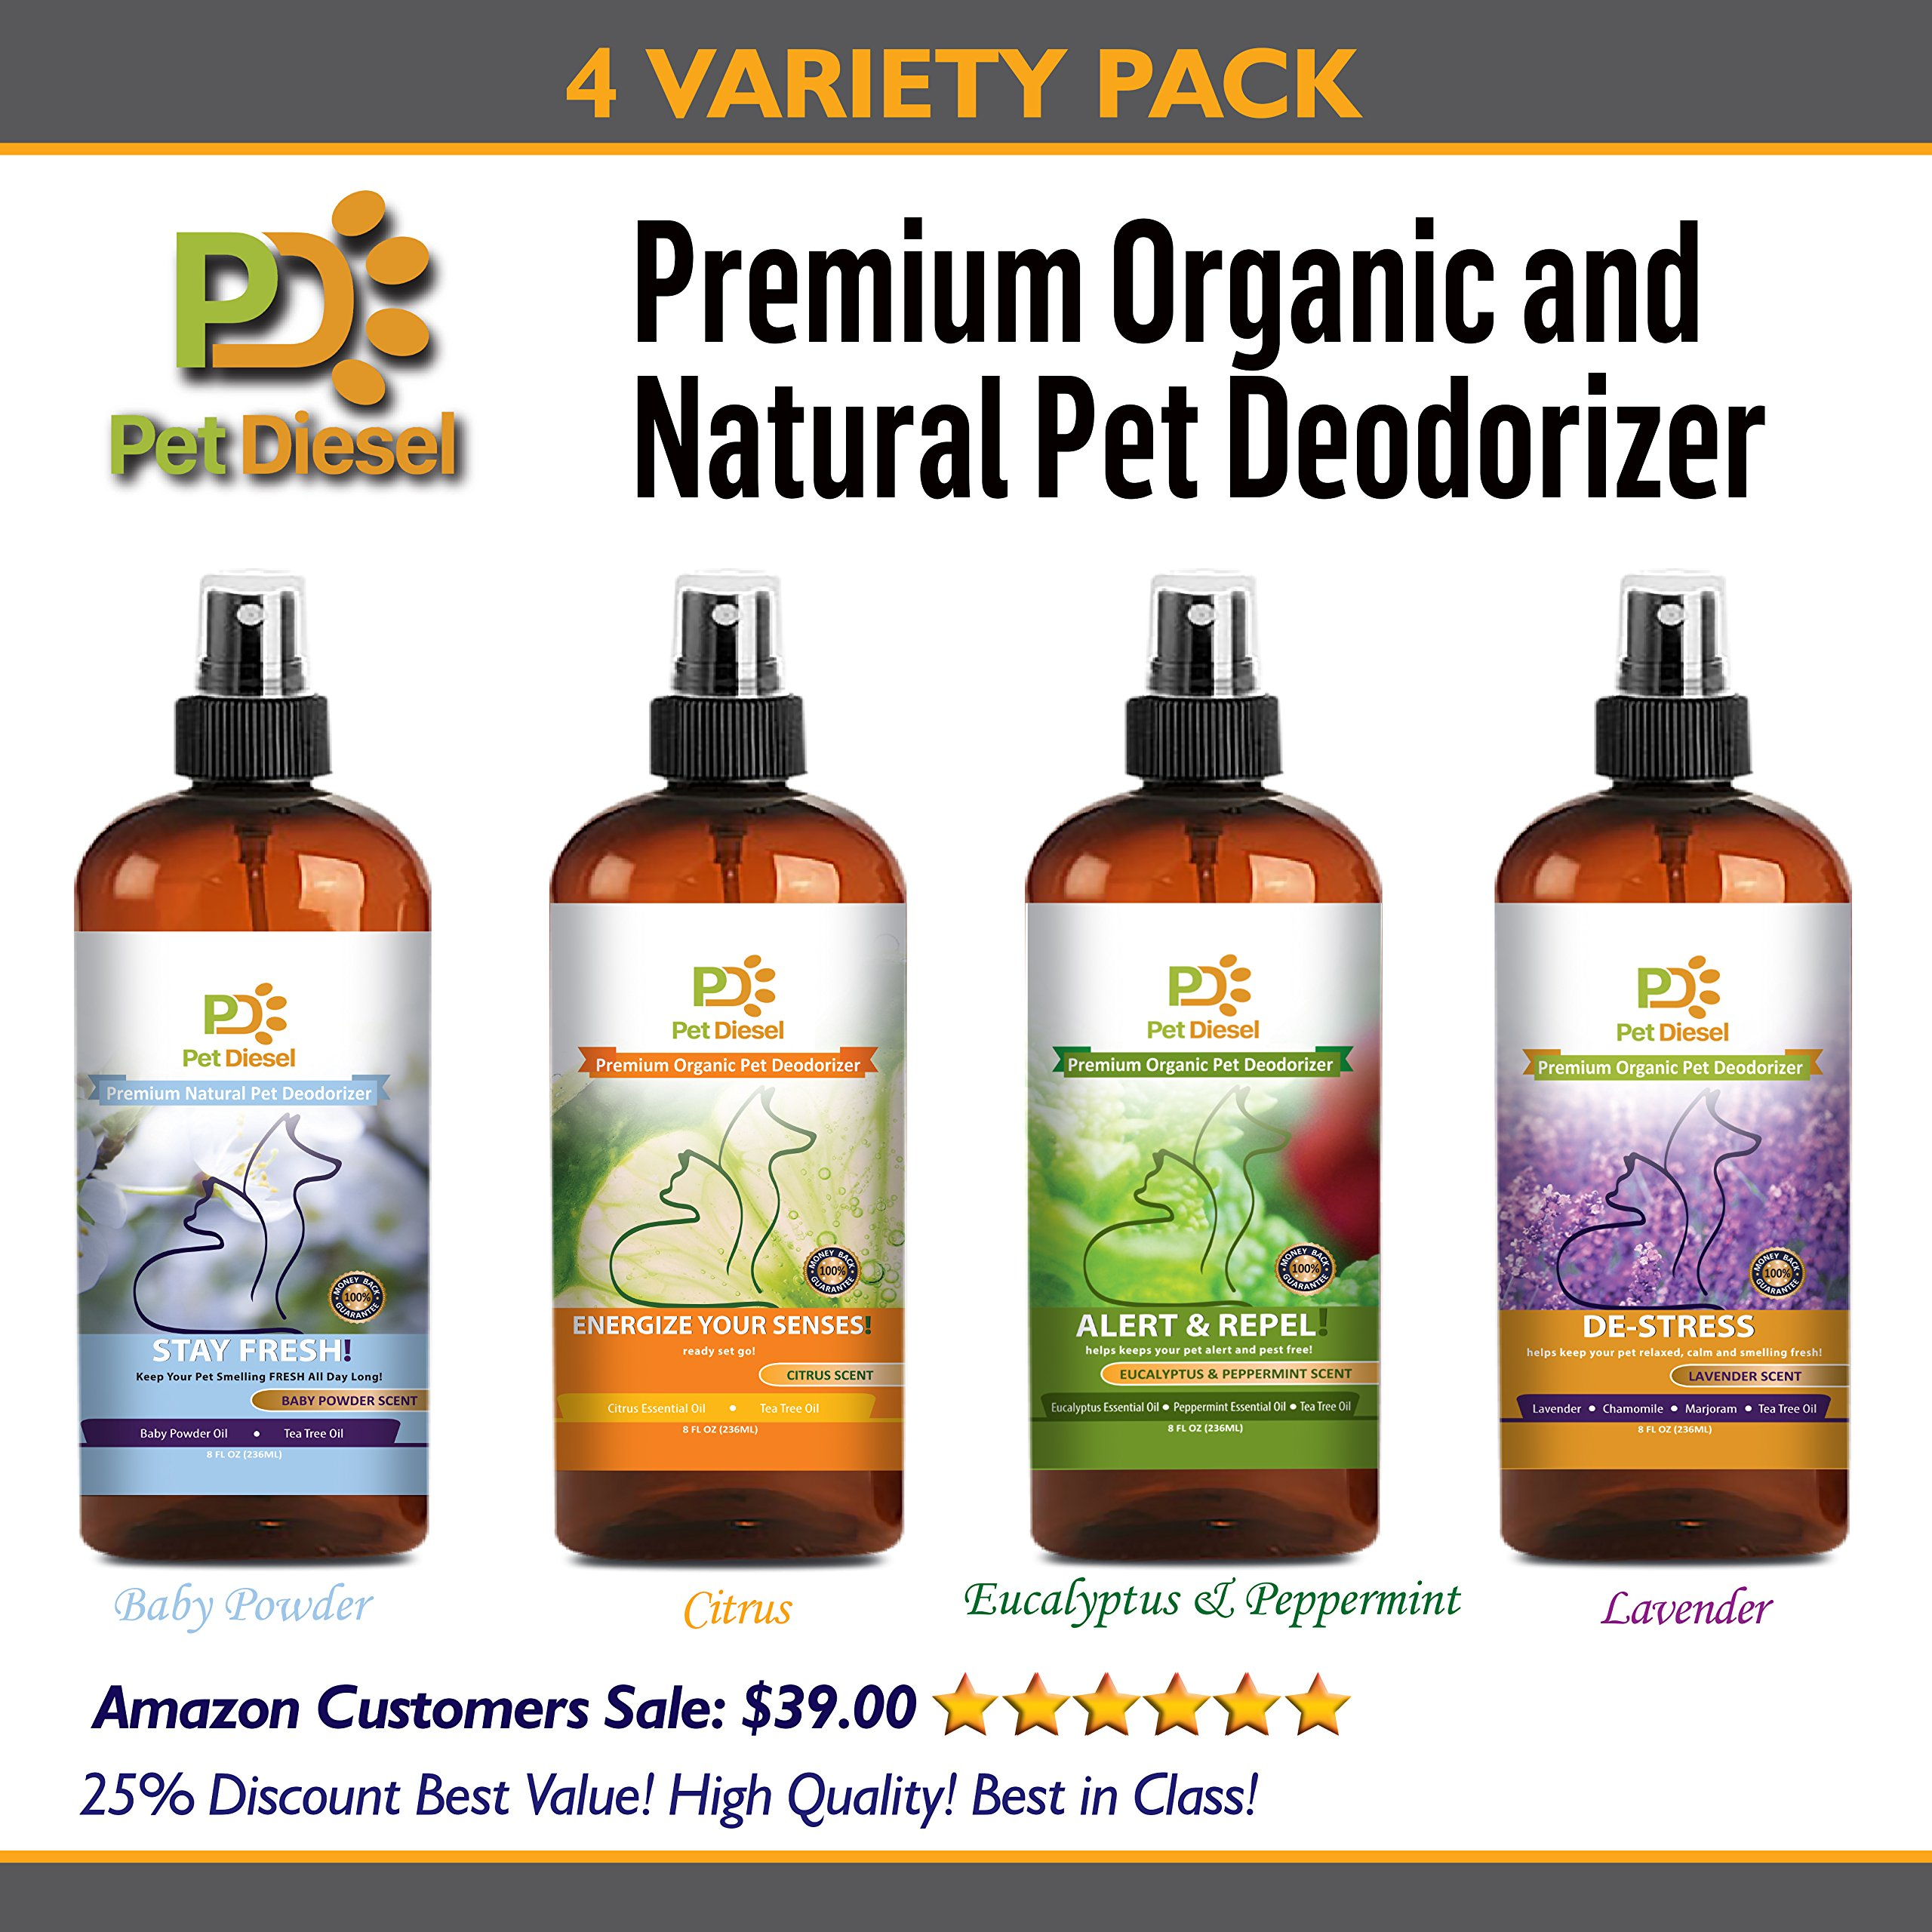 4 Value Pack | Pet Deodorizer | Pet Cologne | Pet Perfume | Aromatherapy for Pets | Eliminates Odors & Removes Bacteria w/Enzymes | Baby Powder | Lavender | Eucalyptus & Peppermint | & Citrus Scents by Pet Diesel